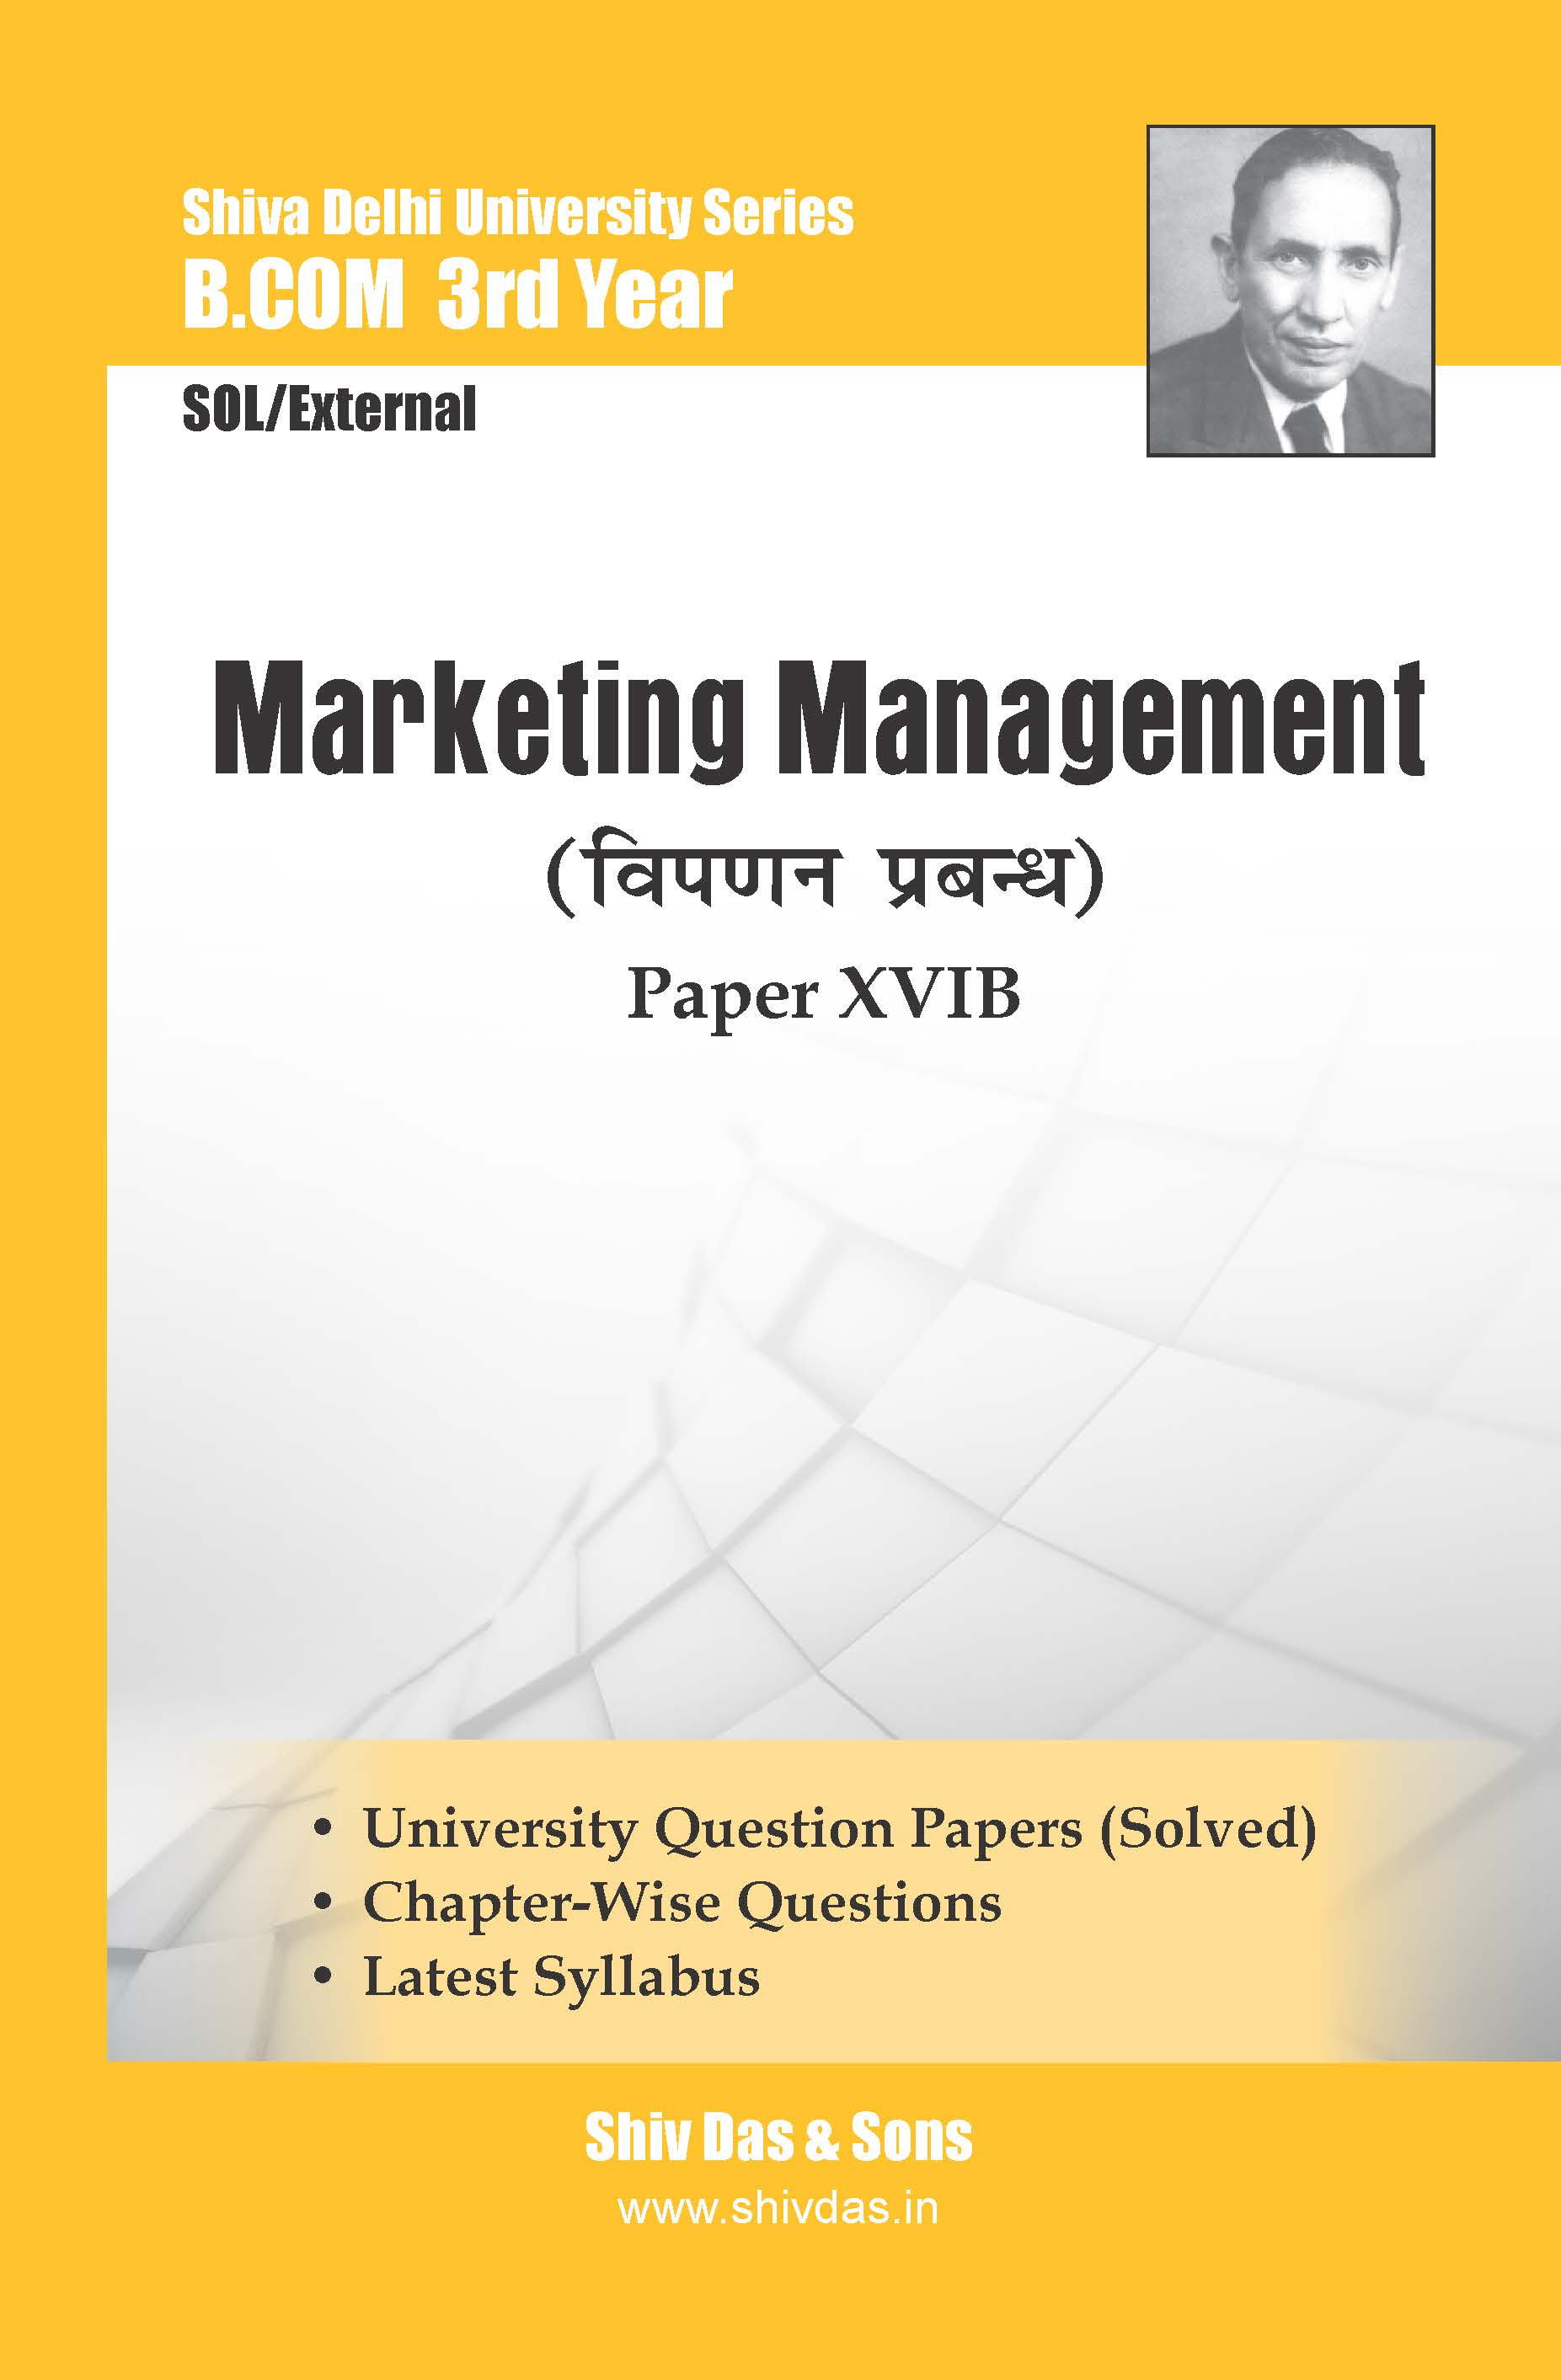 B.Com 3rd Year SOL/External Marketing Management (Hindi Medium) Shiv Das Delhi University Series